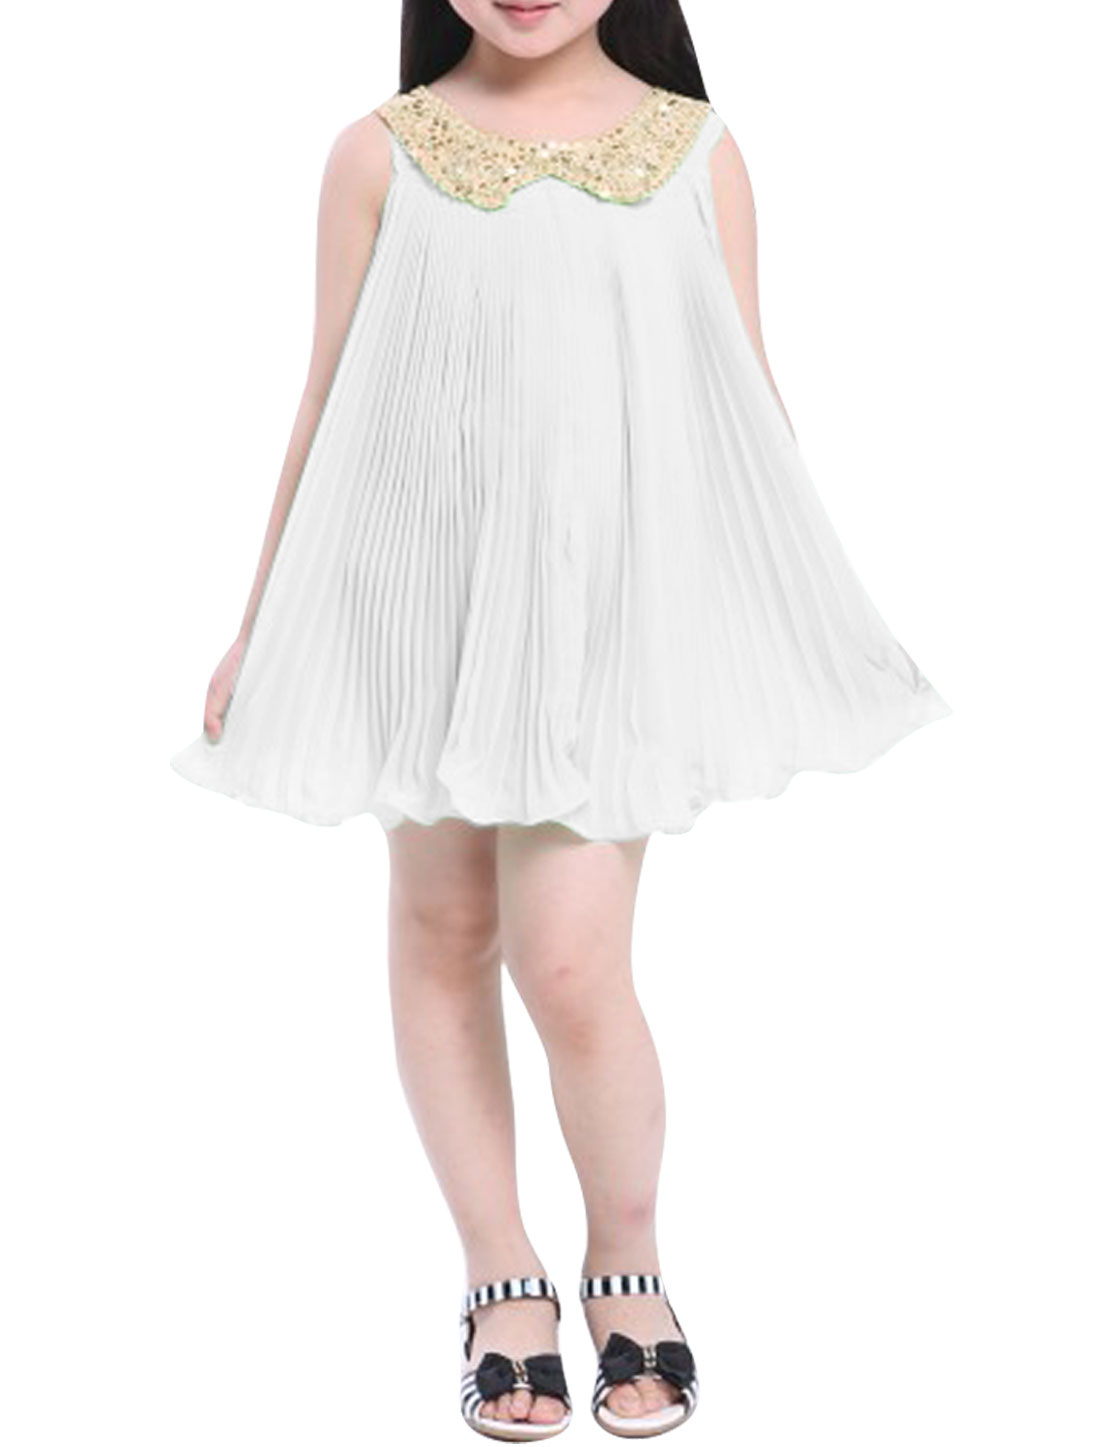 White Color Sequined Peter Collar Summer Babydoll Dress for Girls 12